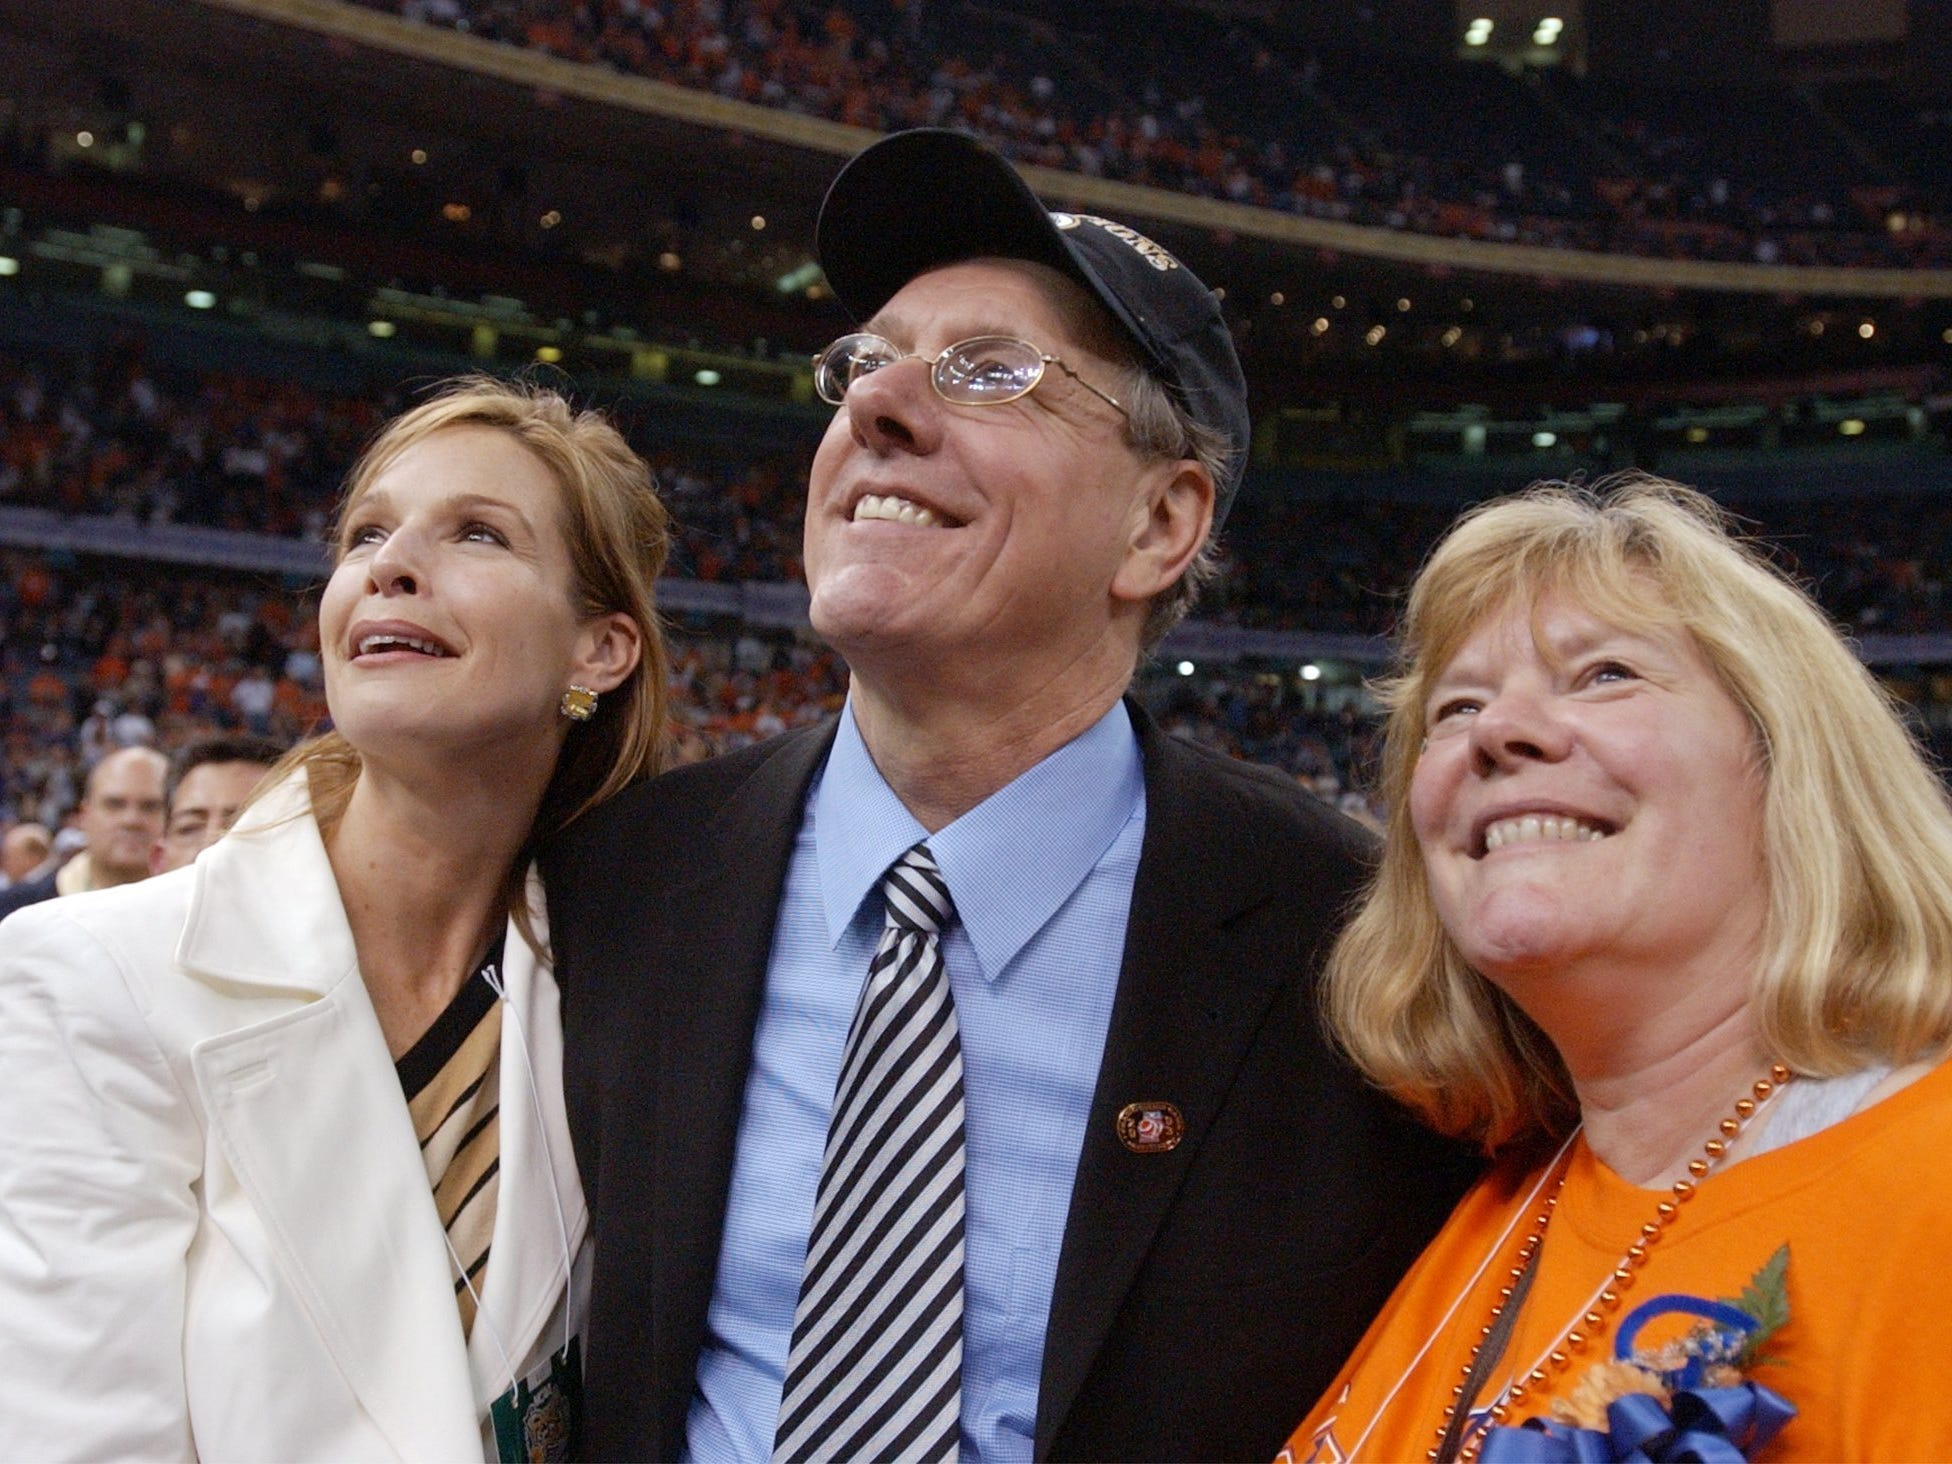 2003: Syracuse head coach Jim Boeheim, center, celebrates the Orangemen 81-78 victory over the Kansas Jayhawks with his wife Julie, left, and sister Barbara following their NCAA Championship at the Louisiana Superdome in New Orleans, Louisiana, Monday, April 7, 2003. (nk) 2003